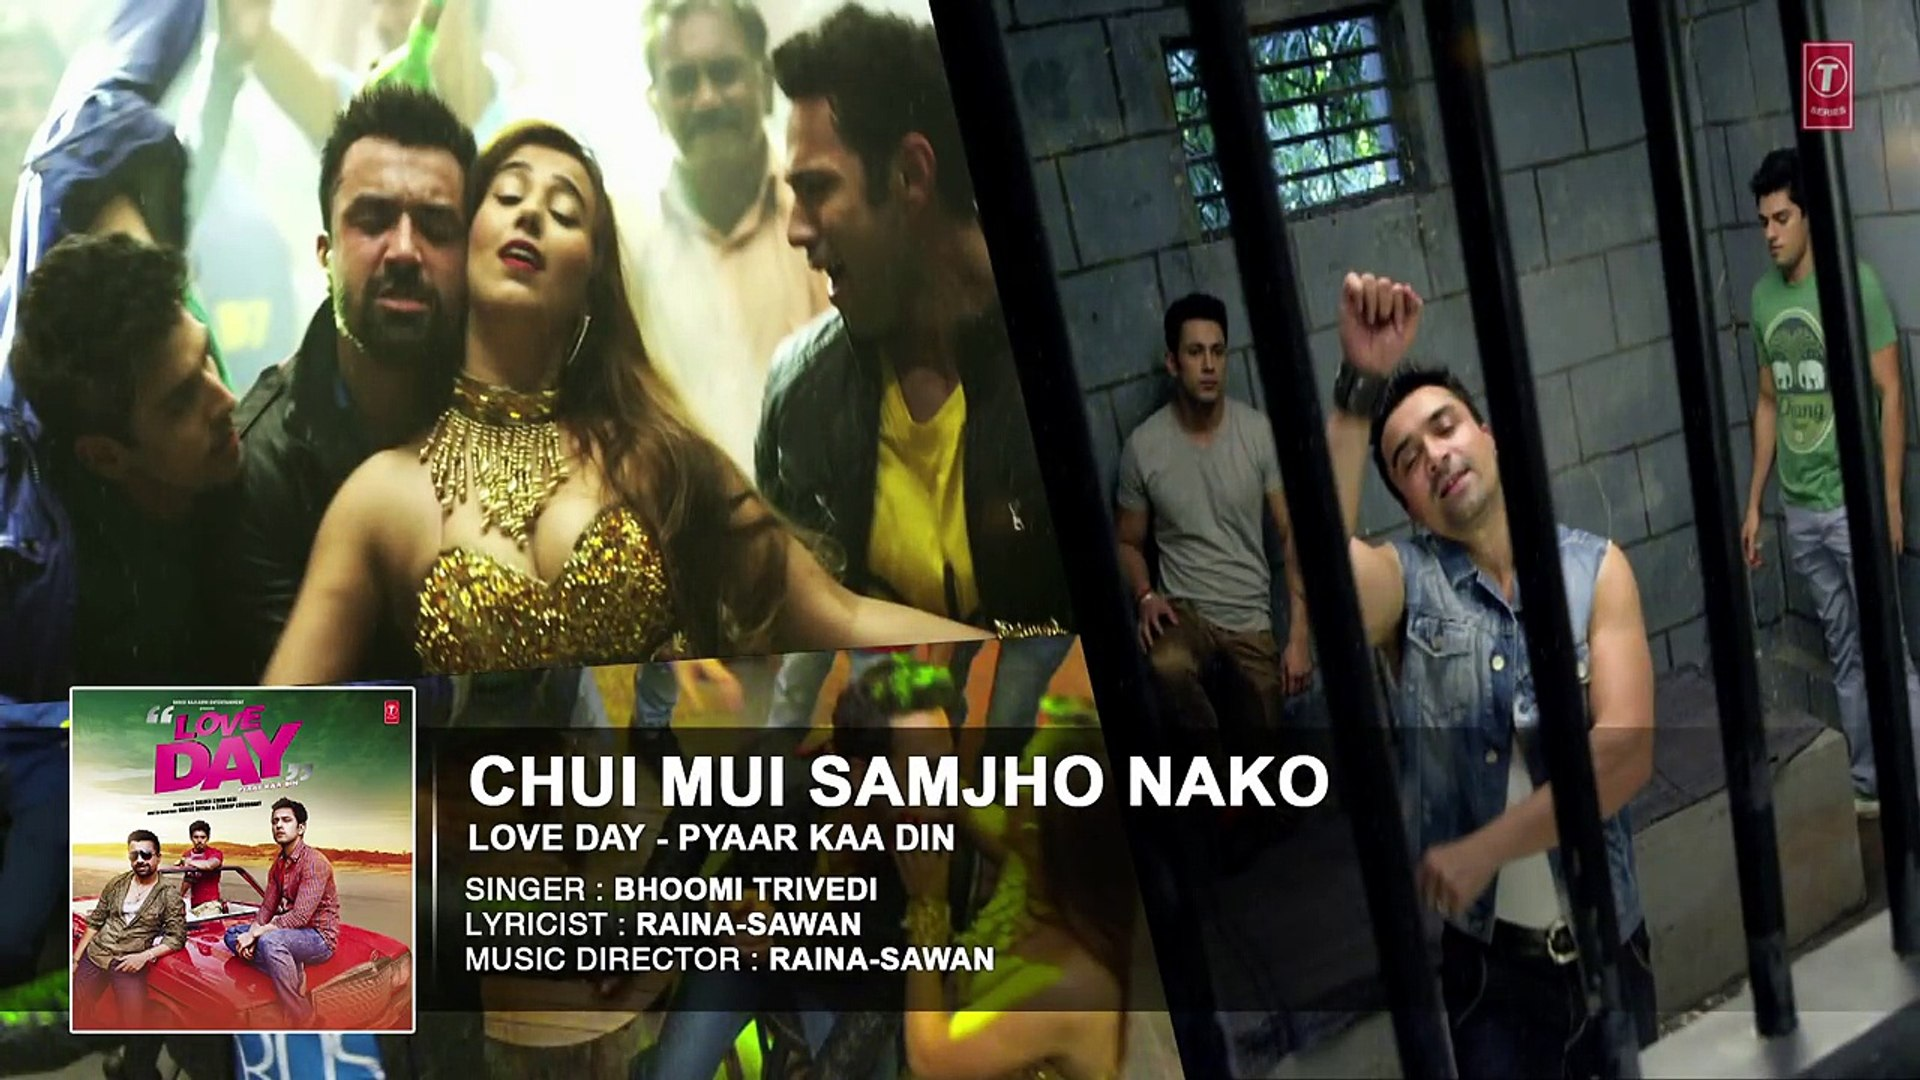 CHUI MUI SAMJHO NAKO Full Song (Audio) _ LOVE DAY - PYAAR KAA DIN _ Ajaz Khan ,Sahil